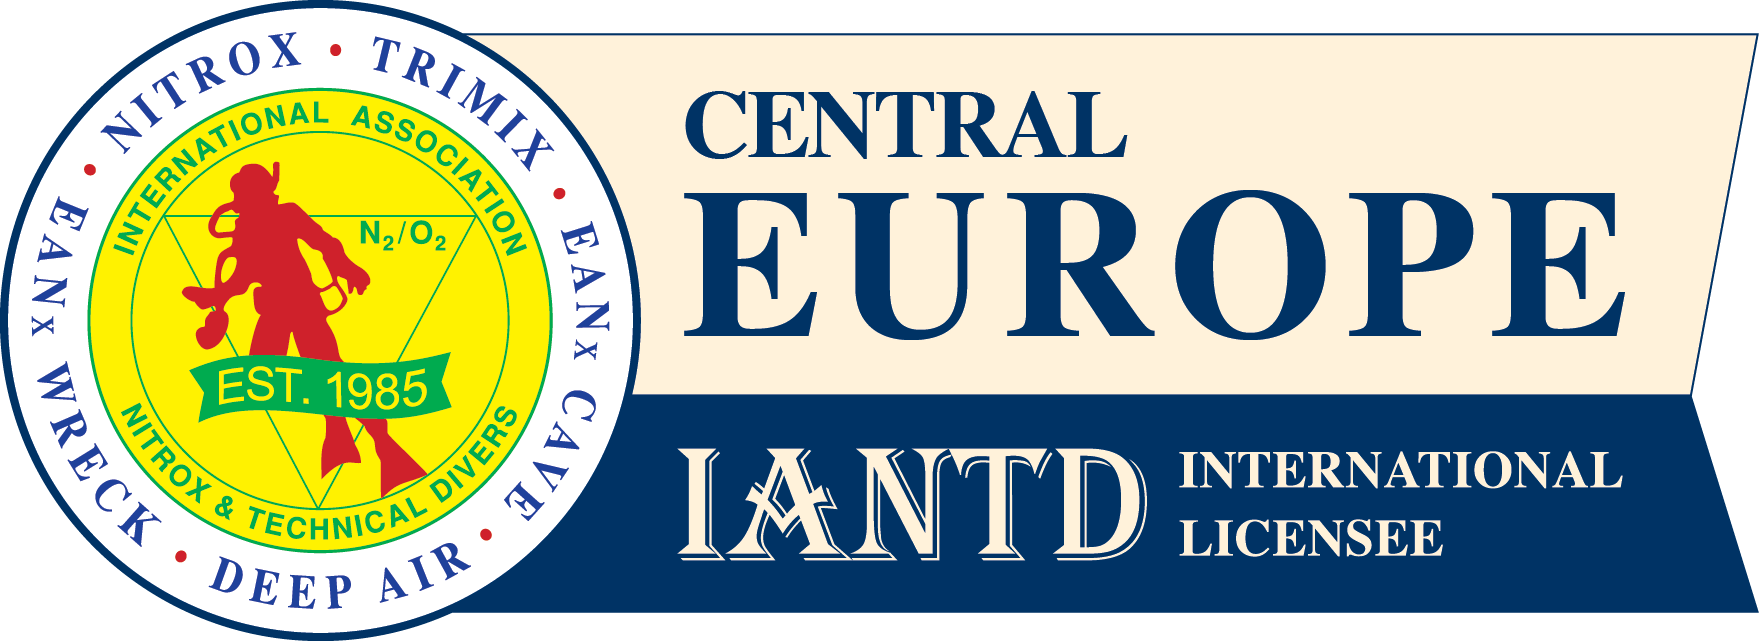 IANTD Central Europe